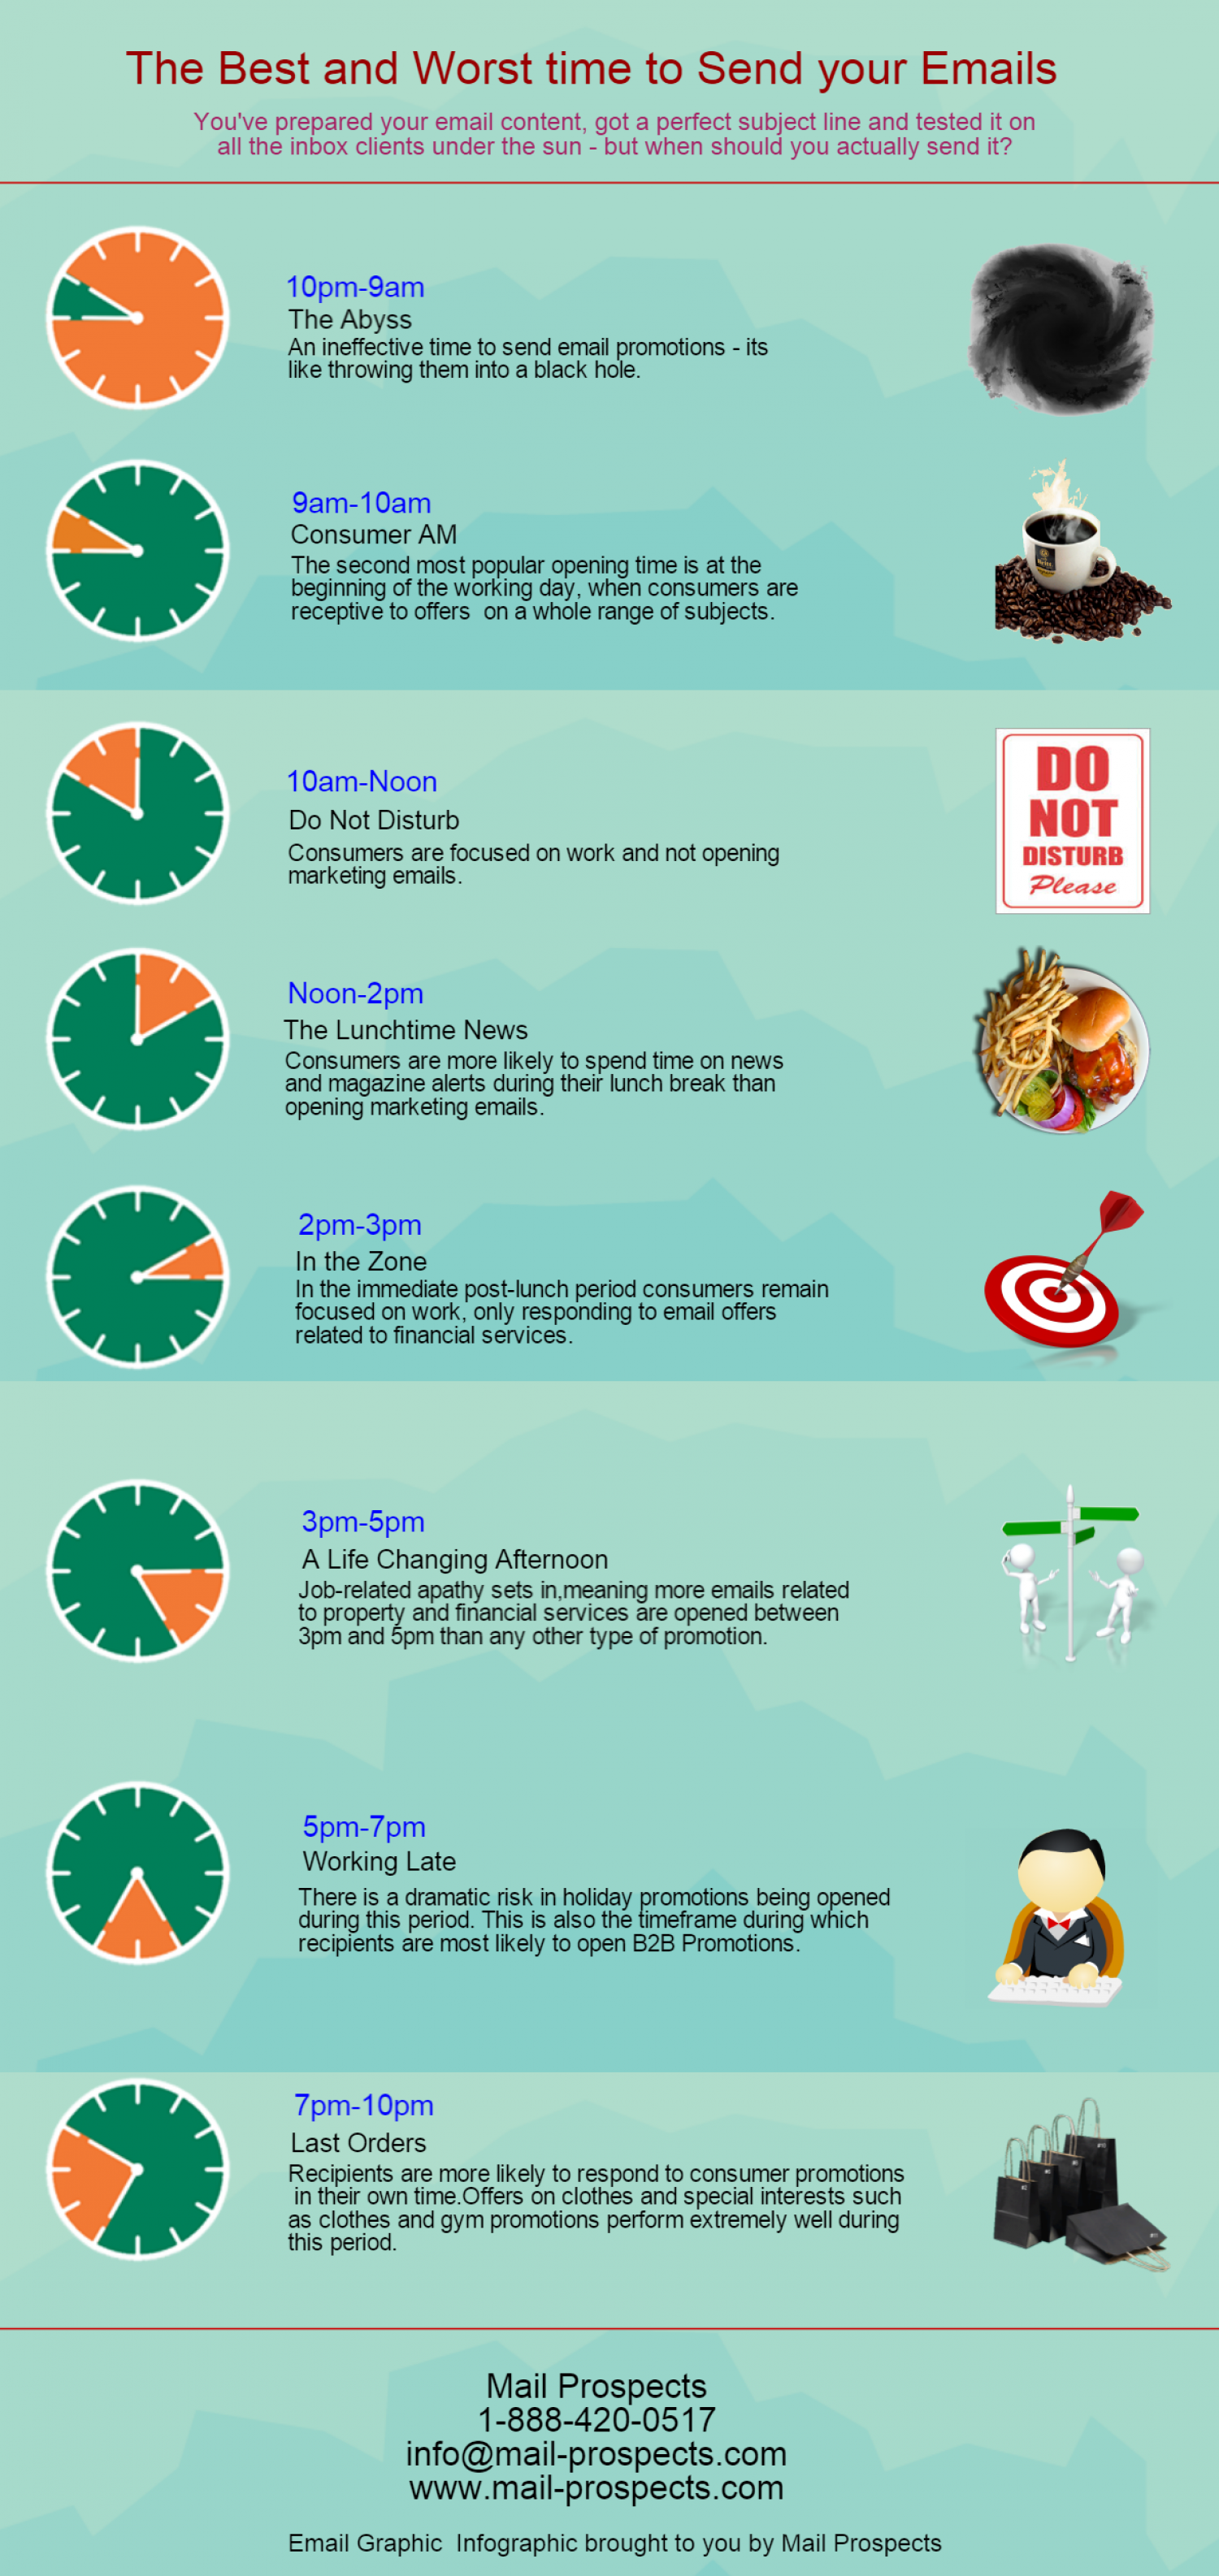 The Best and Worst Time to Send your Emails Infographic